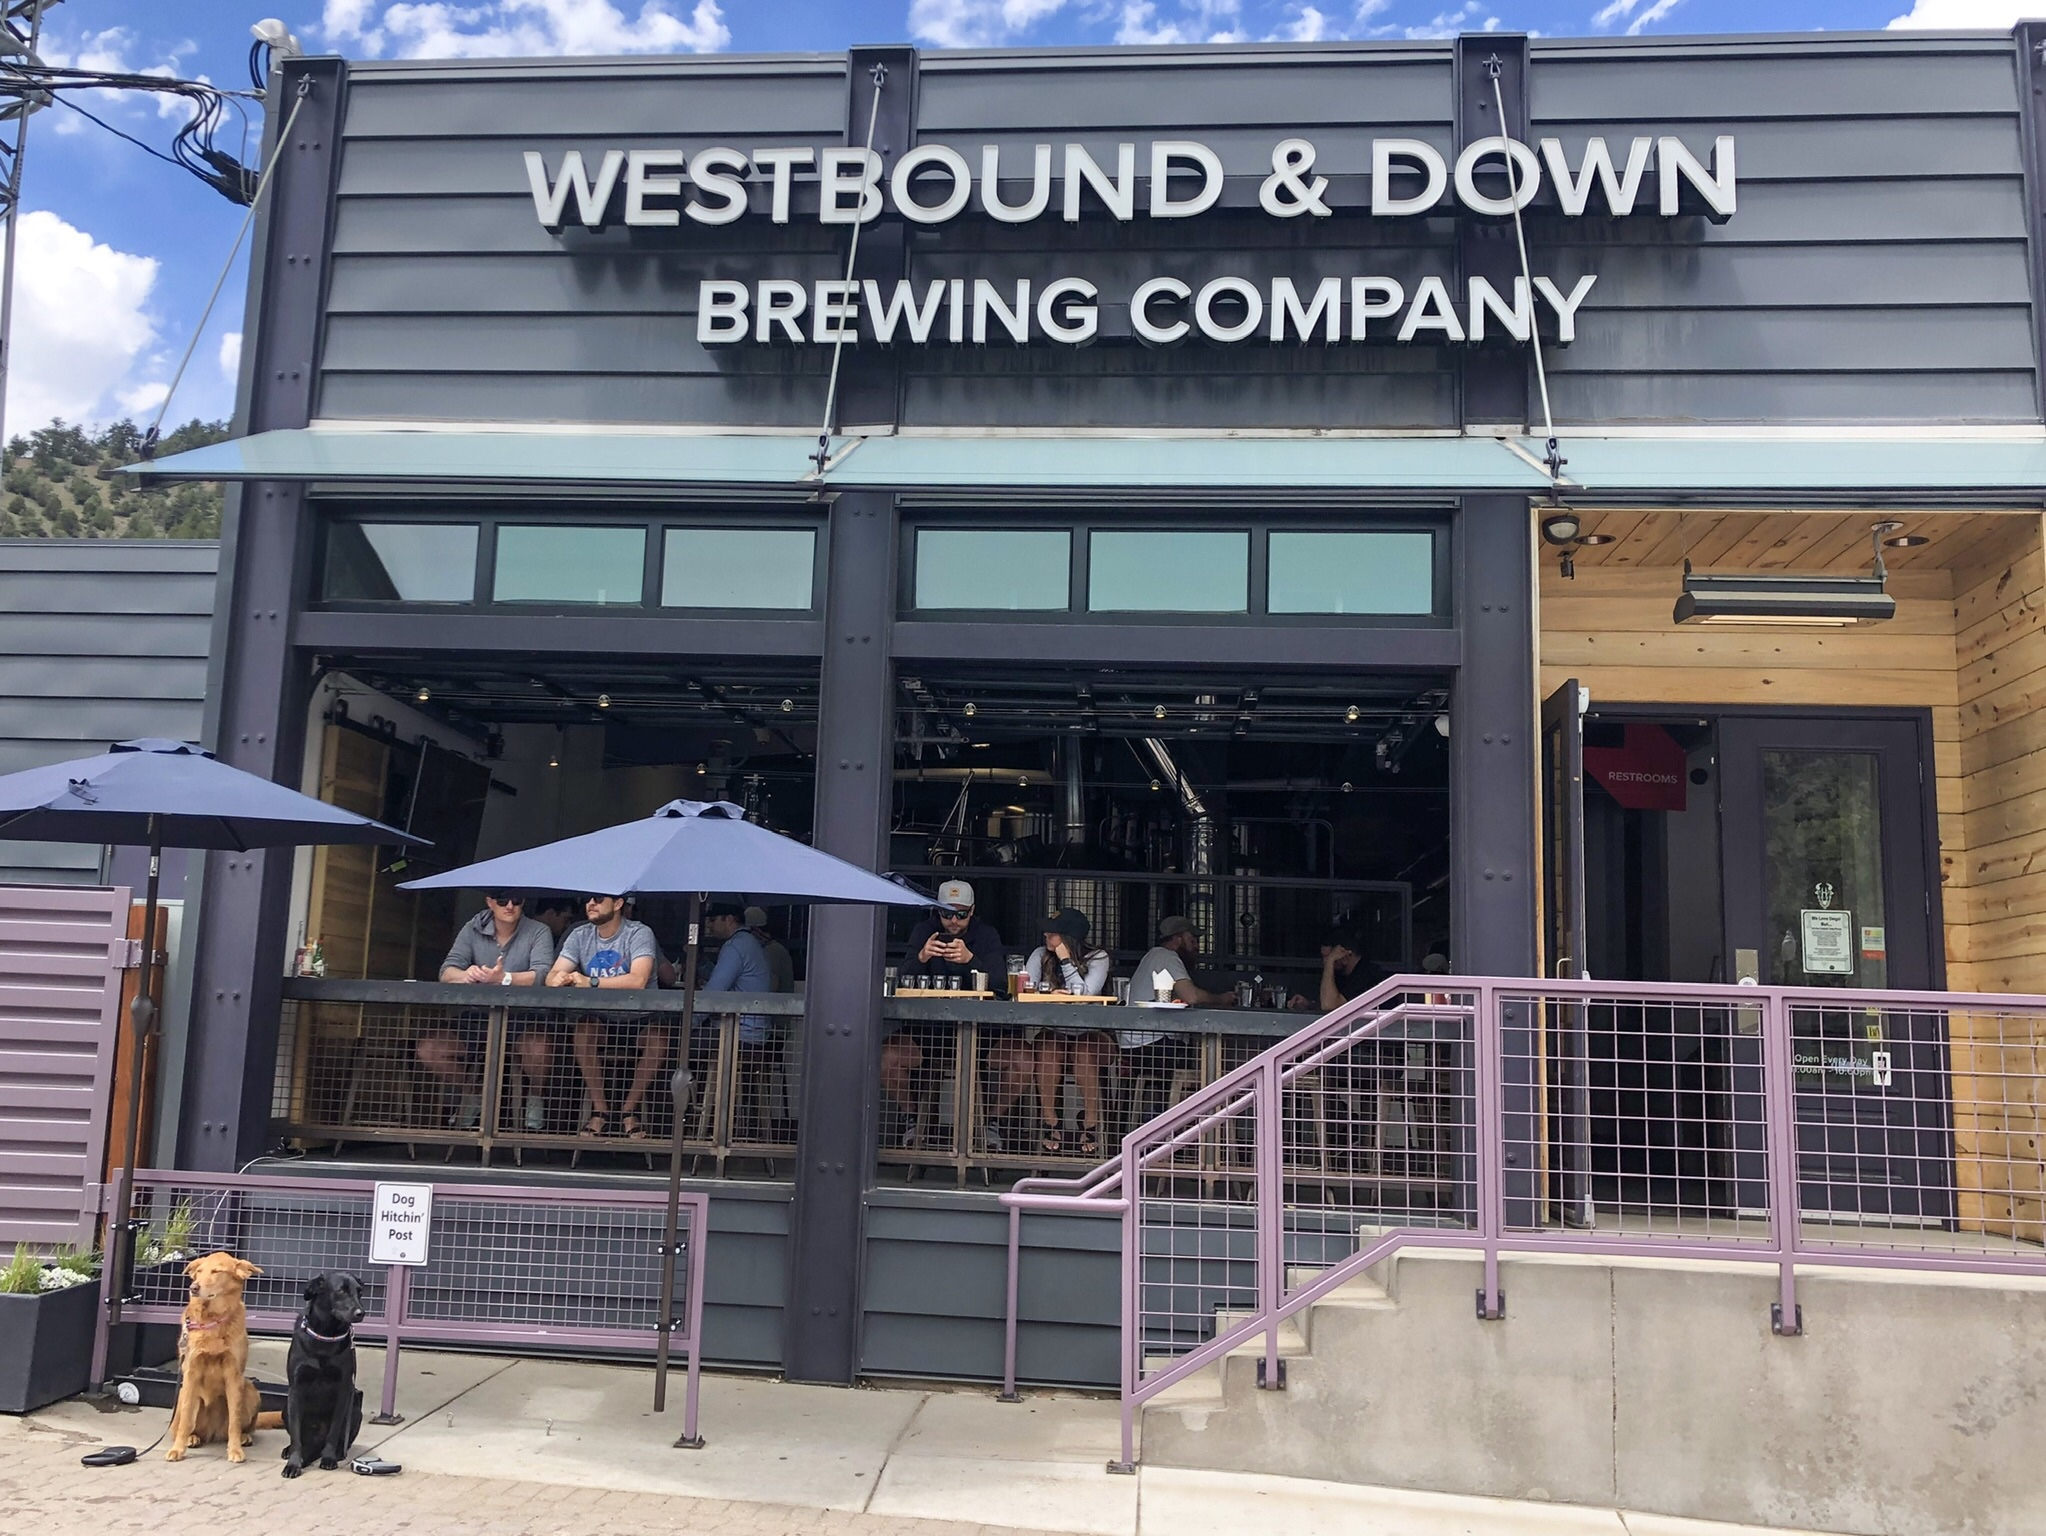 Westbound & Down Brewing Company has dog hitchin' posts for your furry friends. ©Suzanne Brown 2019